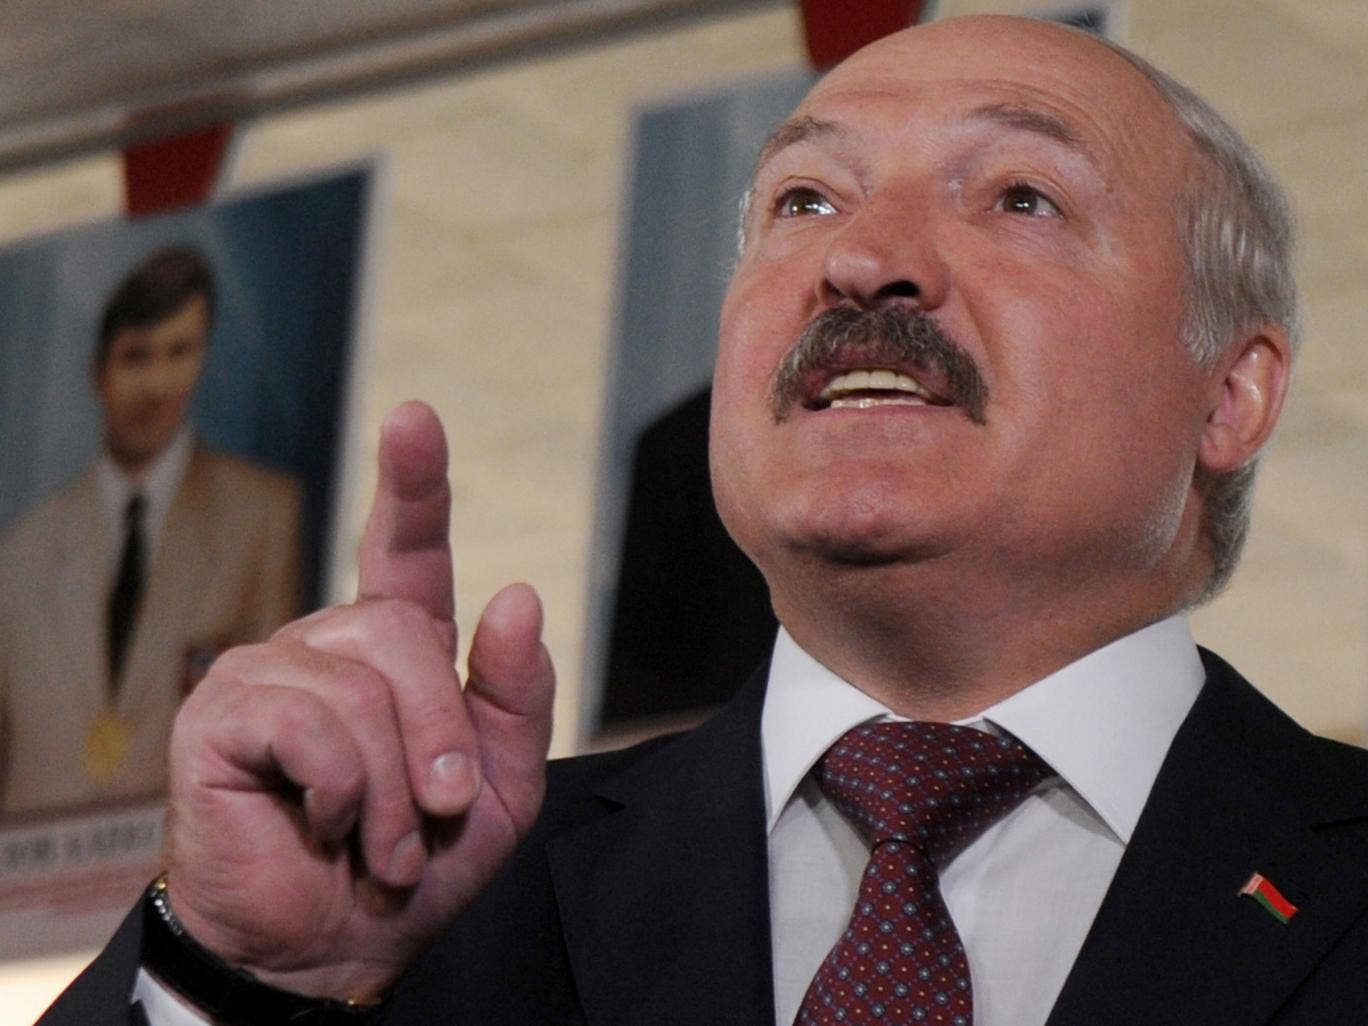 Index on Censorship claims Belarusian president Alexander Lukashenko has significantly expanded his government's control over the internet